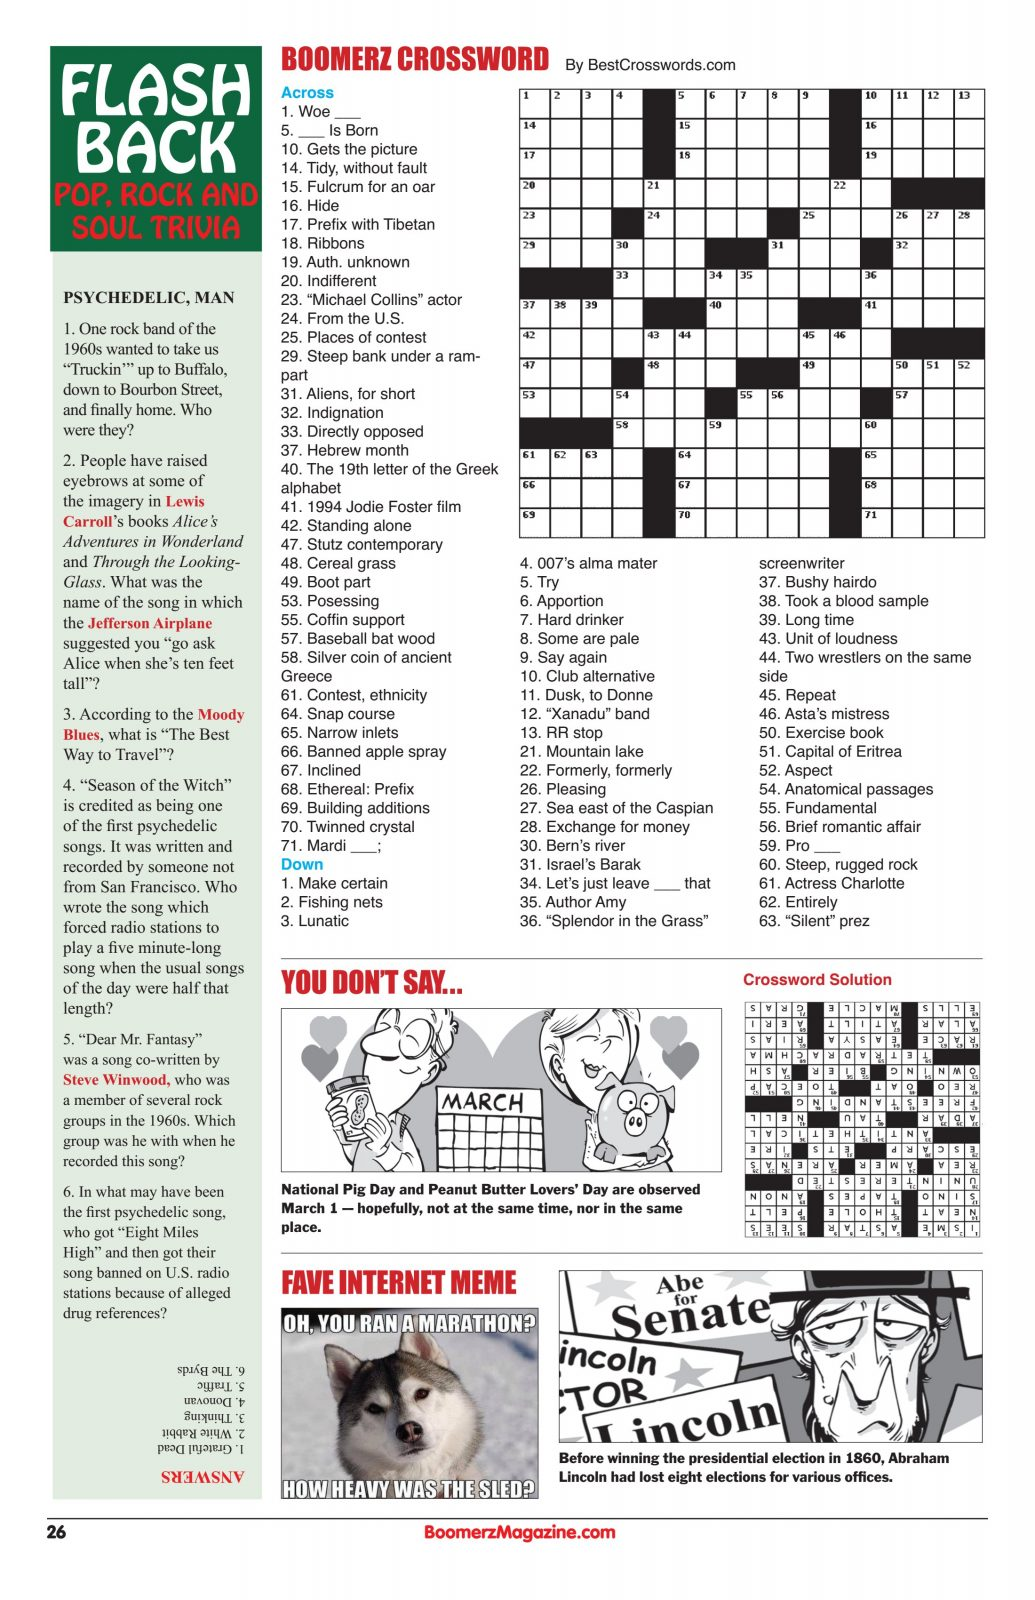 Pop-Rock-and-Soul-Trivia-Crossword-puzzle